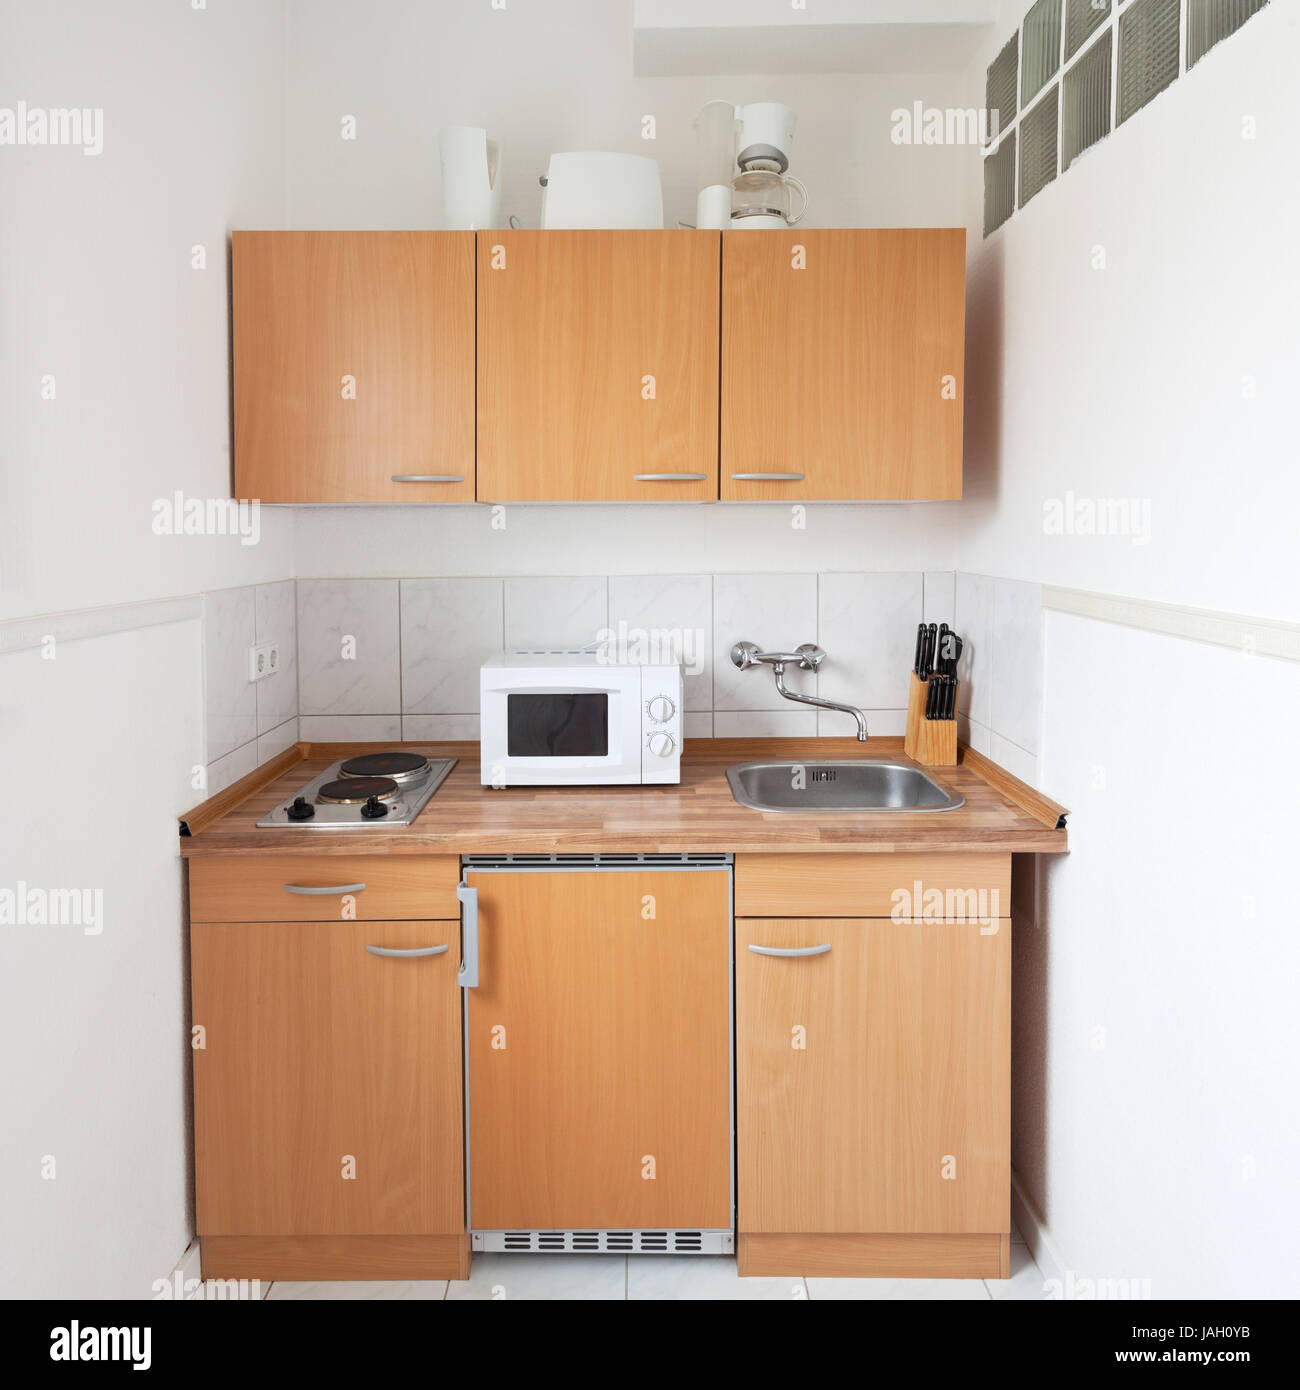 Simple Kitchen Equipment simple kitchen with furniture set and kitchen equipment stock